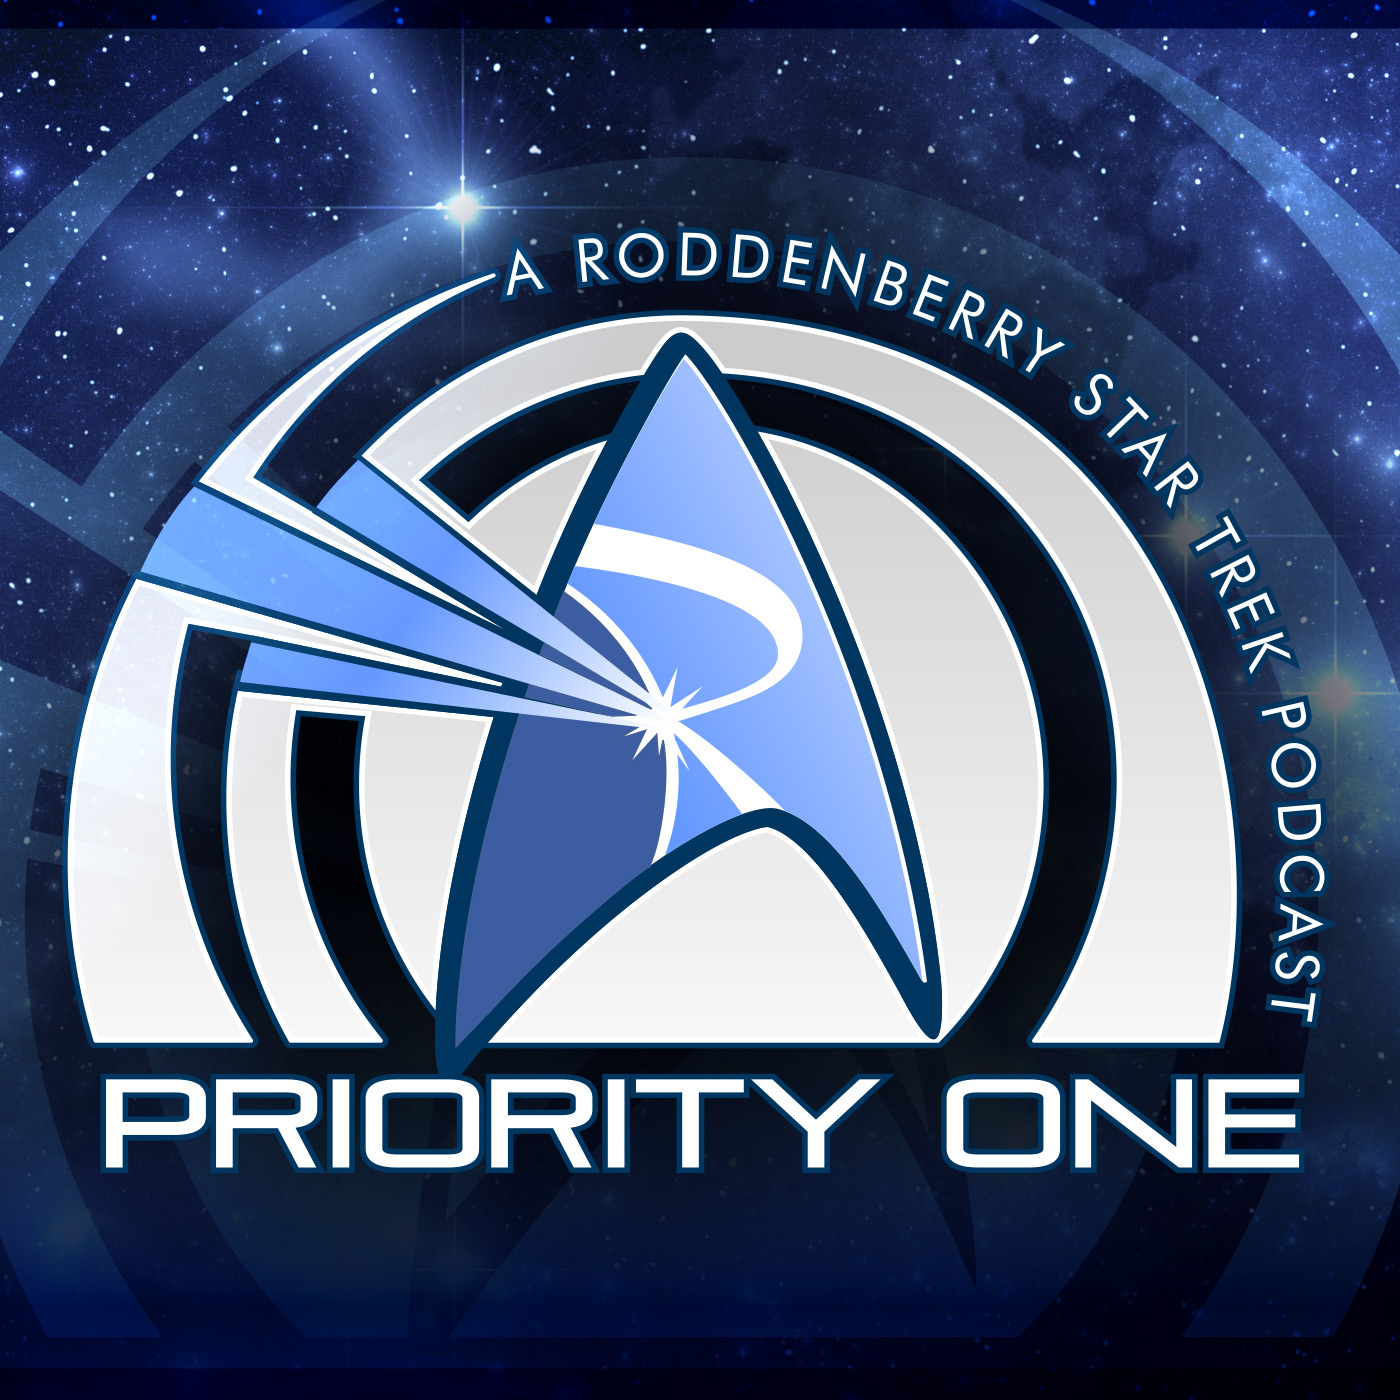 Artwork for 382 - Shakeup at CBS | Priority One: A Roddenberry Star Trek Podcast